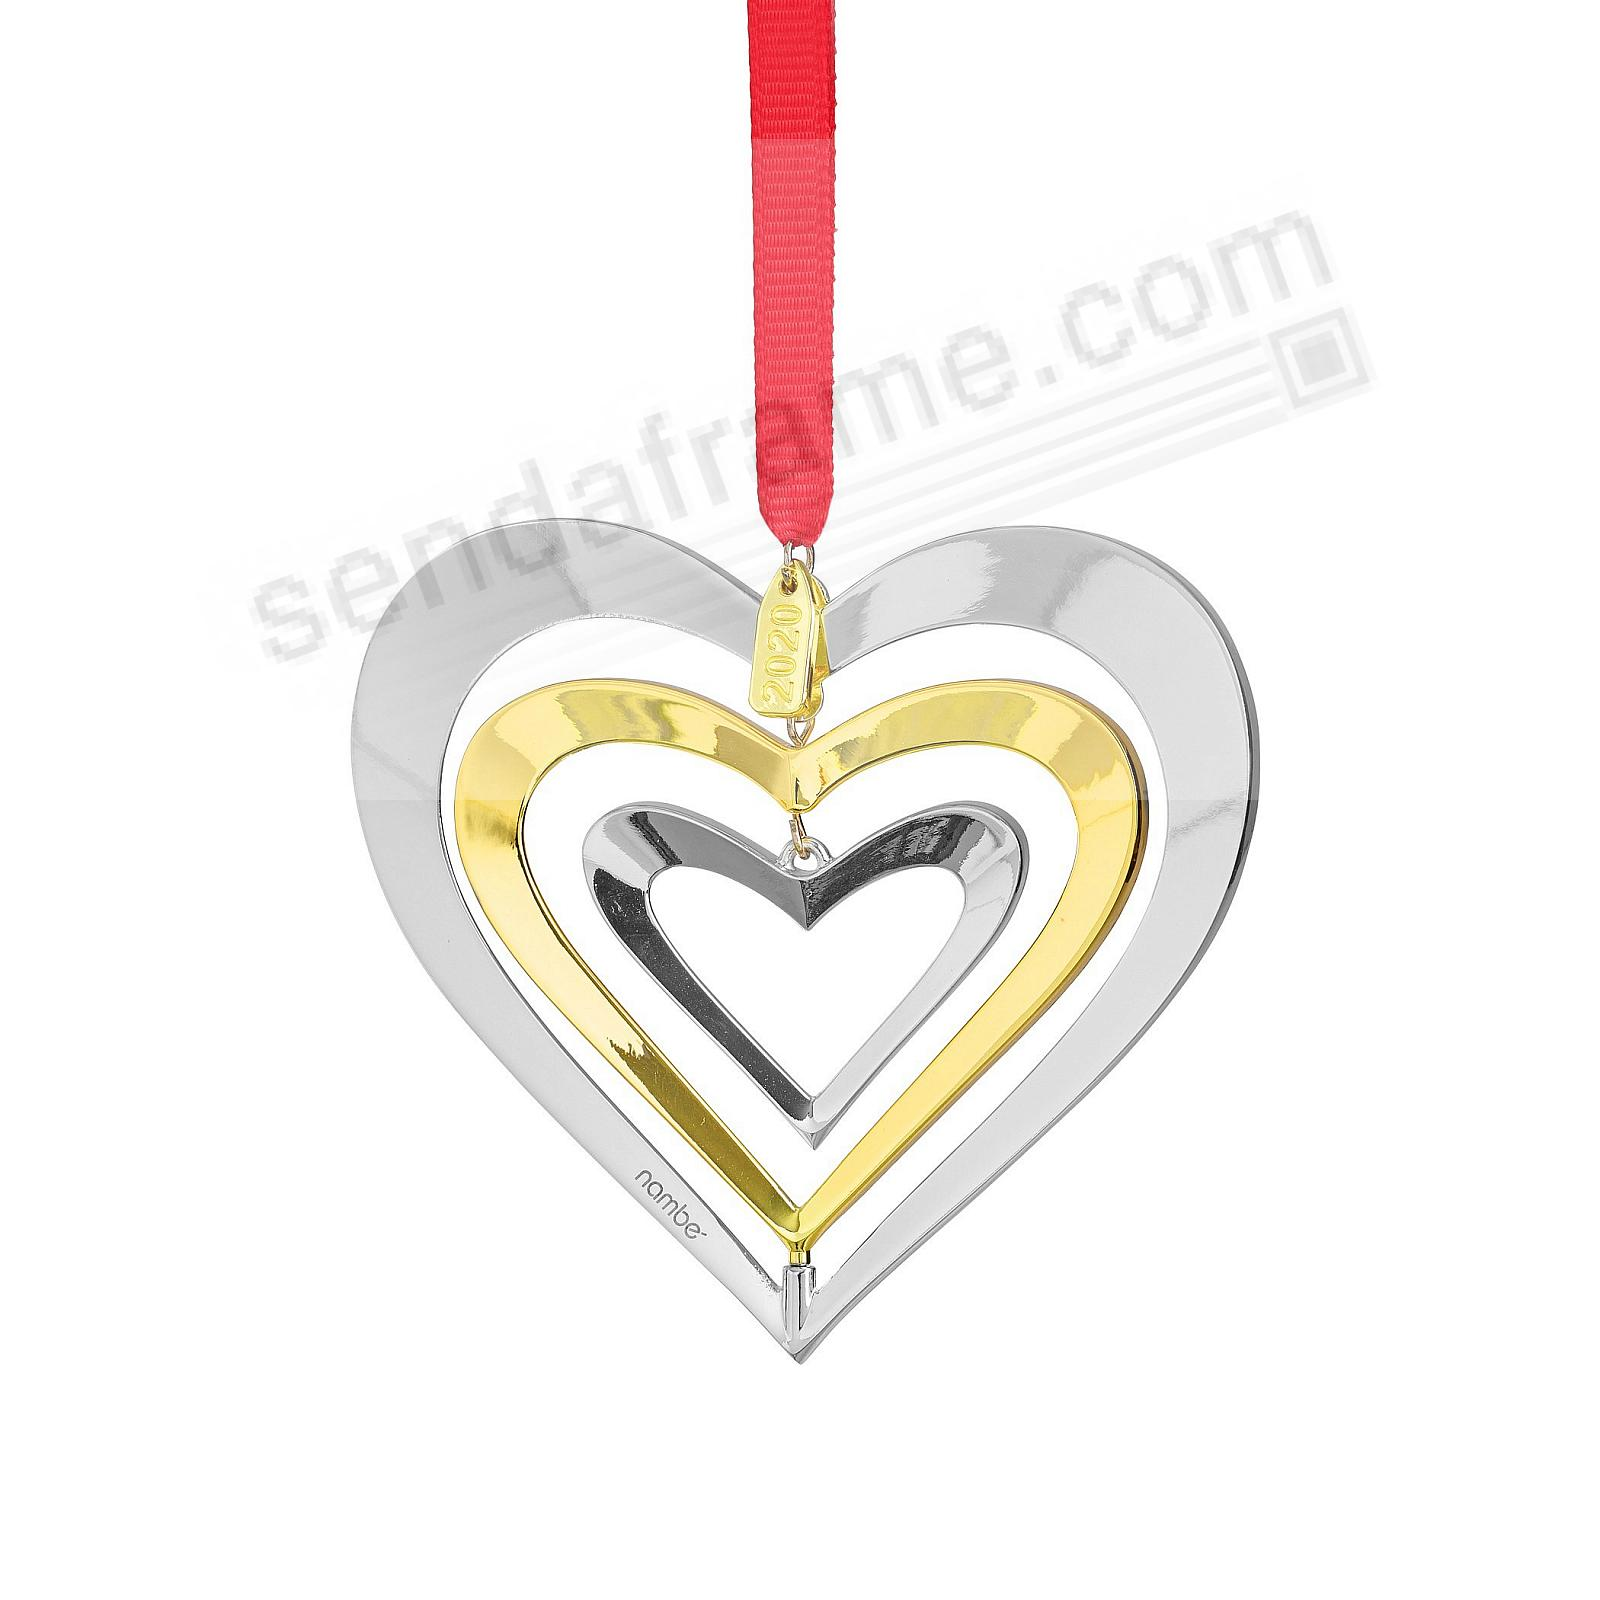 2020 Annual Keepsake Ornament by Nambe®